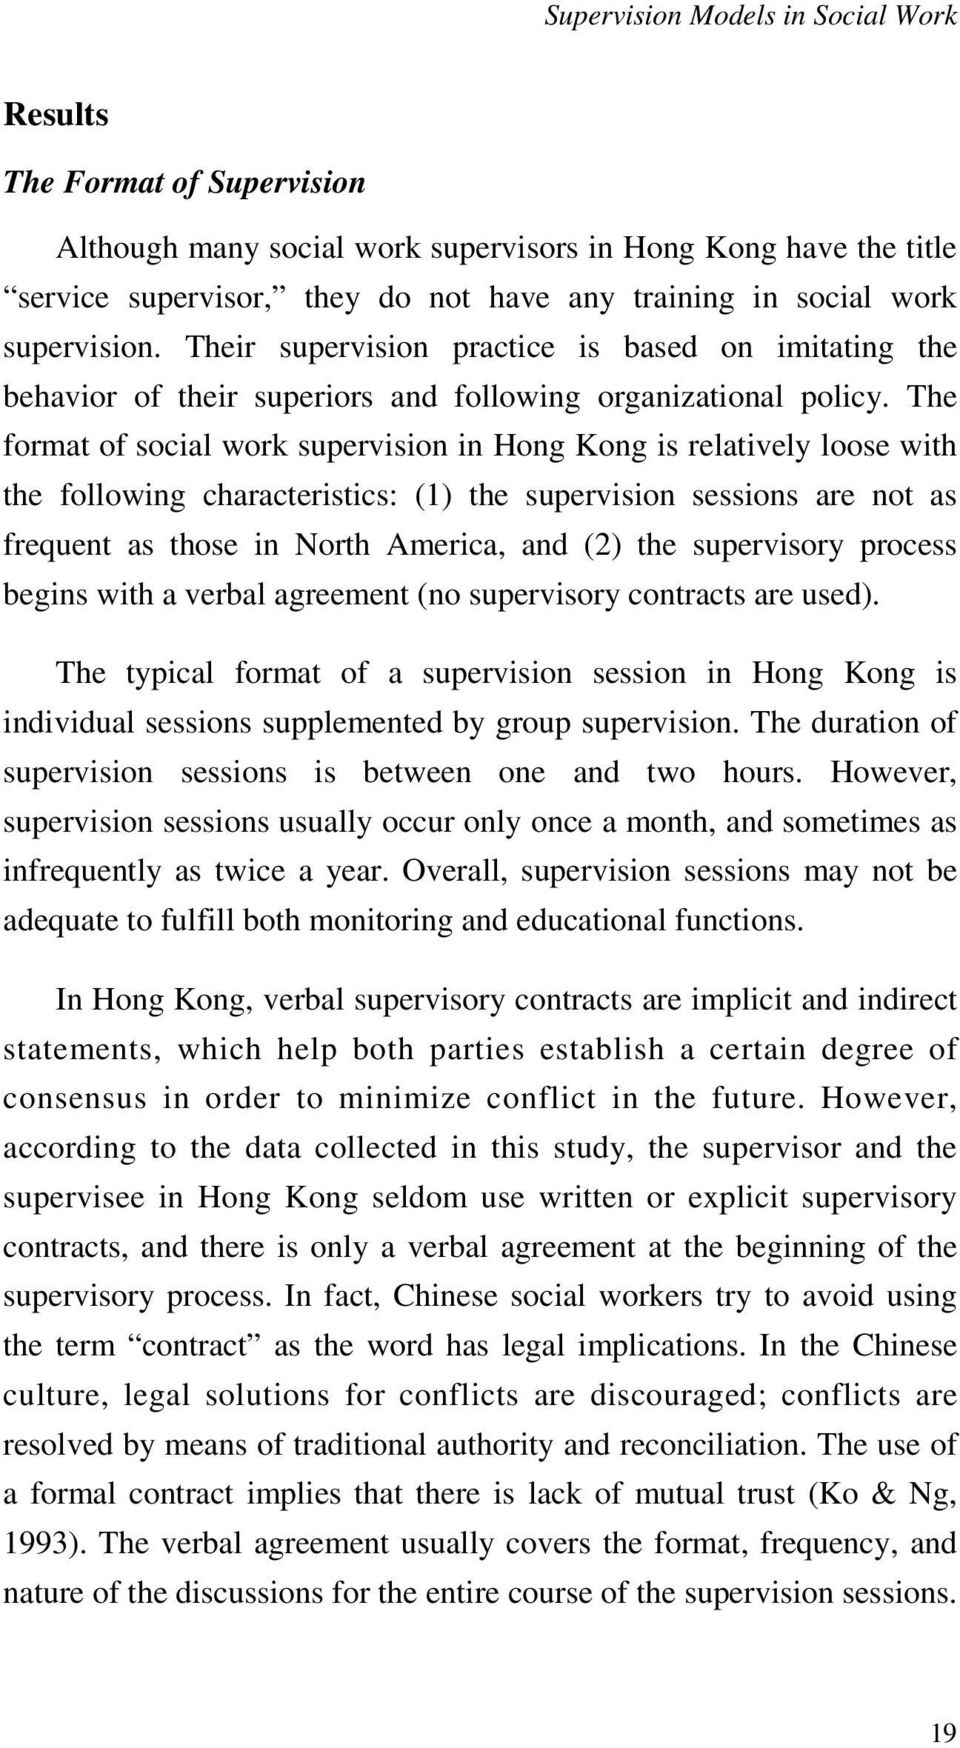 The format of social work supervision in Hong Kong is relatively loose with the following characteristics: (1) the supervision sessions are not as frequent as those in North America, and (2) the